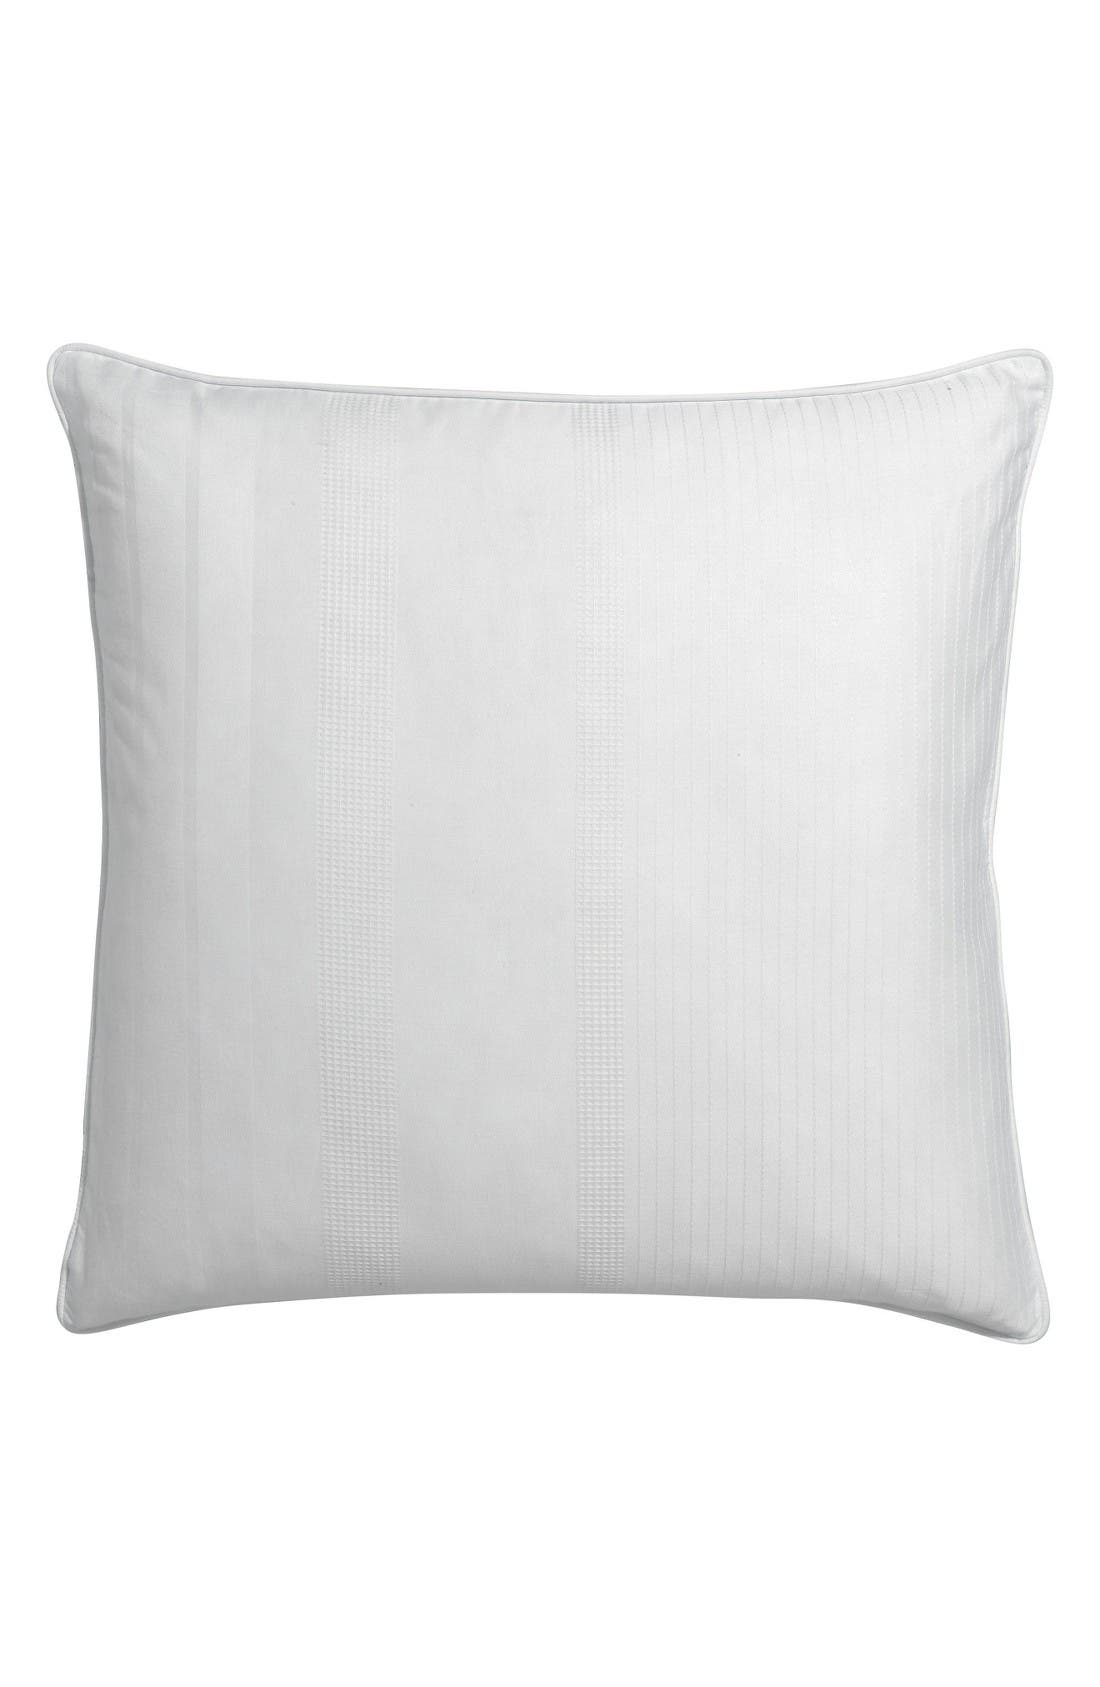 Alternate Image 1 Selected - Portico Sloane Square Organic Cotton Dobby Accent Pillow